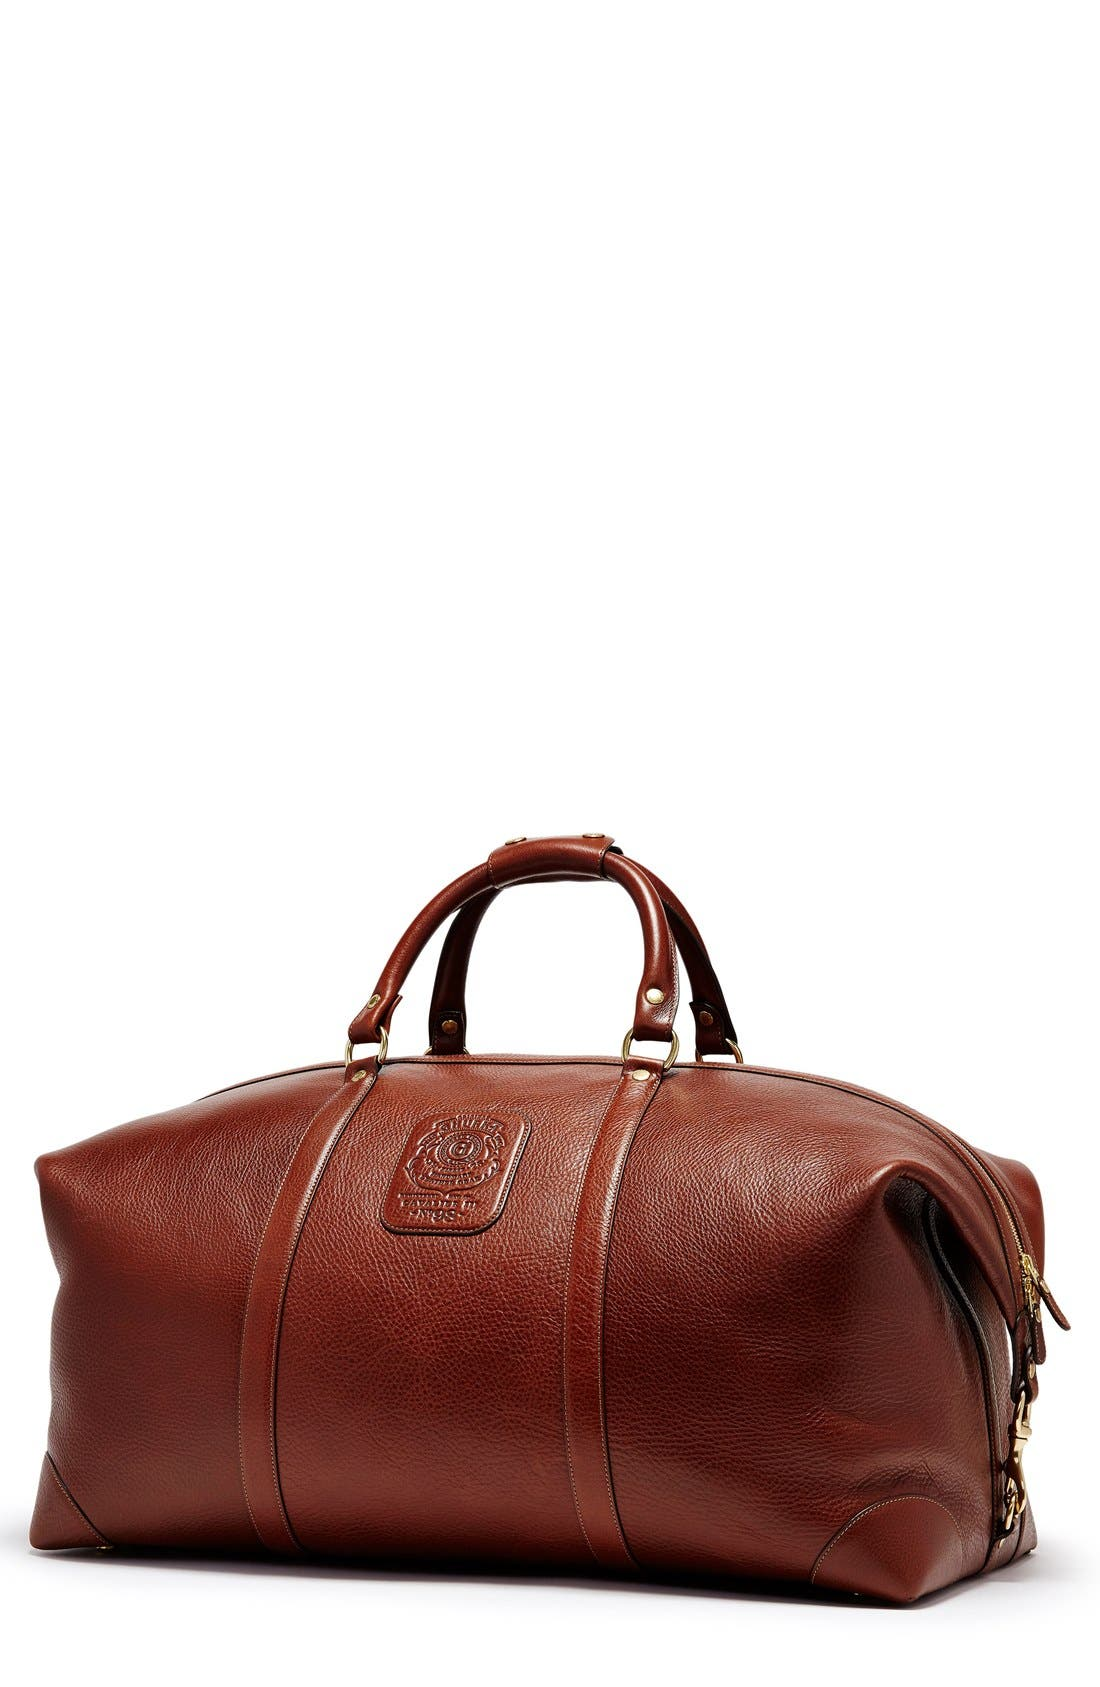 GHURKA Cavalier III Leather Duffel Bag